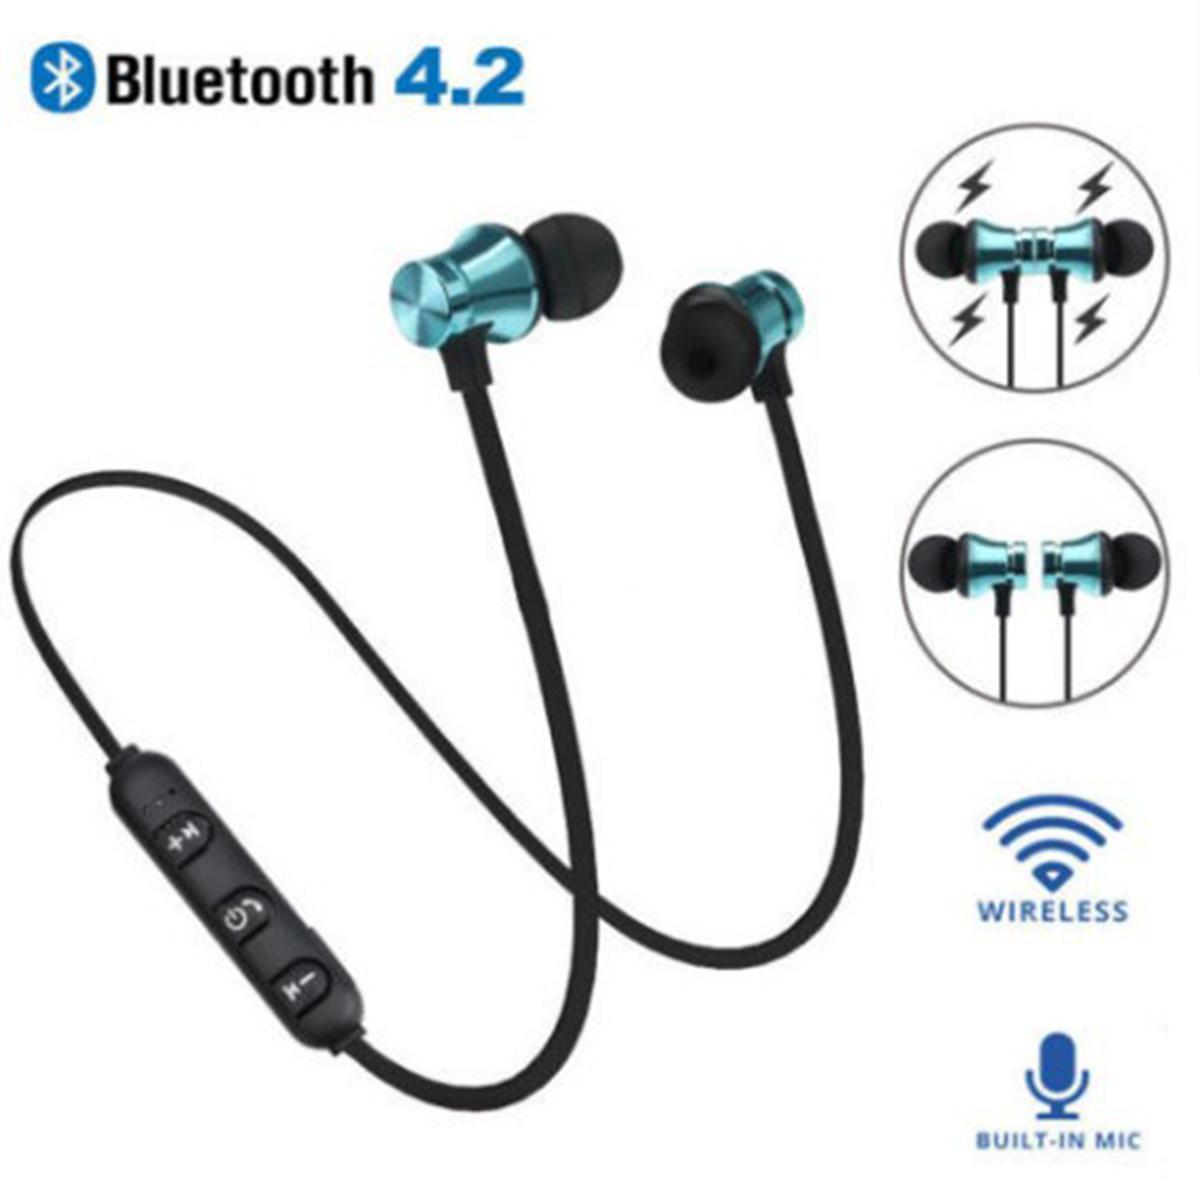 Xt11 Magnet Sport Bluetooth Headphones Bt4 2 Wireless Stereo Earphones With Mic Earbuds Bass Headset For Smartphones With Opp Bag Dpgvc Wireless Telephone Headset Phone Headsets From Dh Niceshop 1 57 Dhgate Com